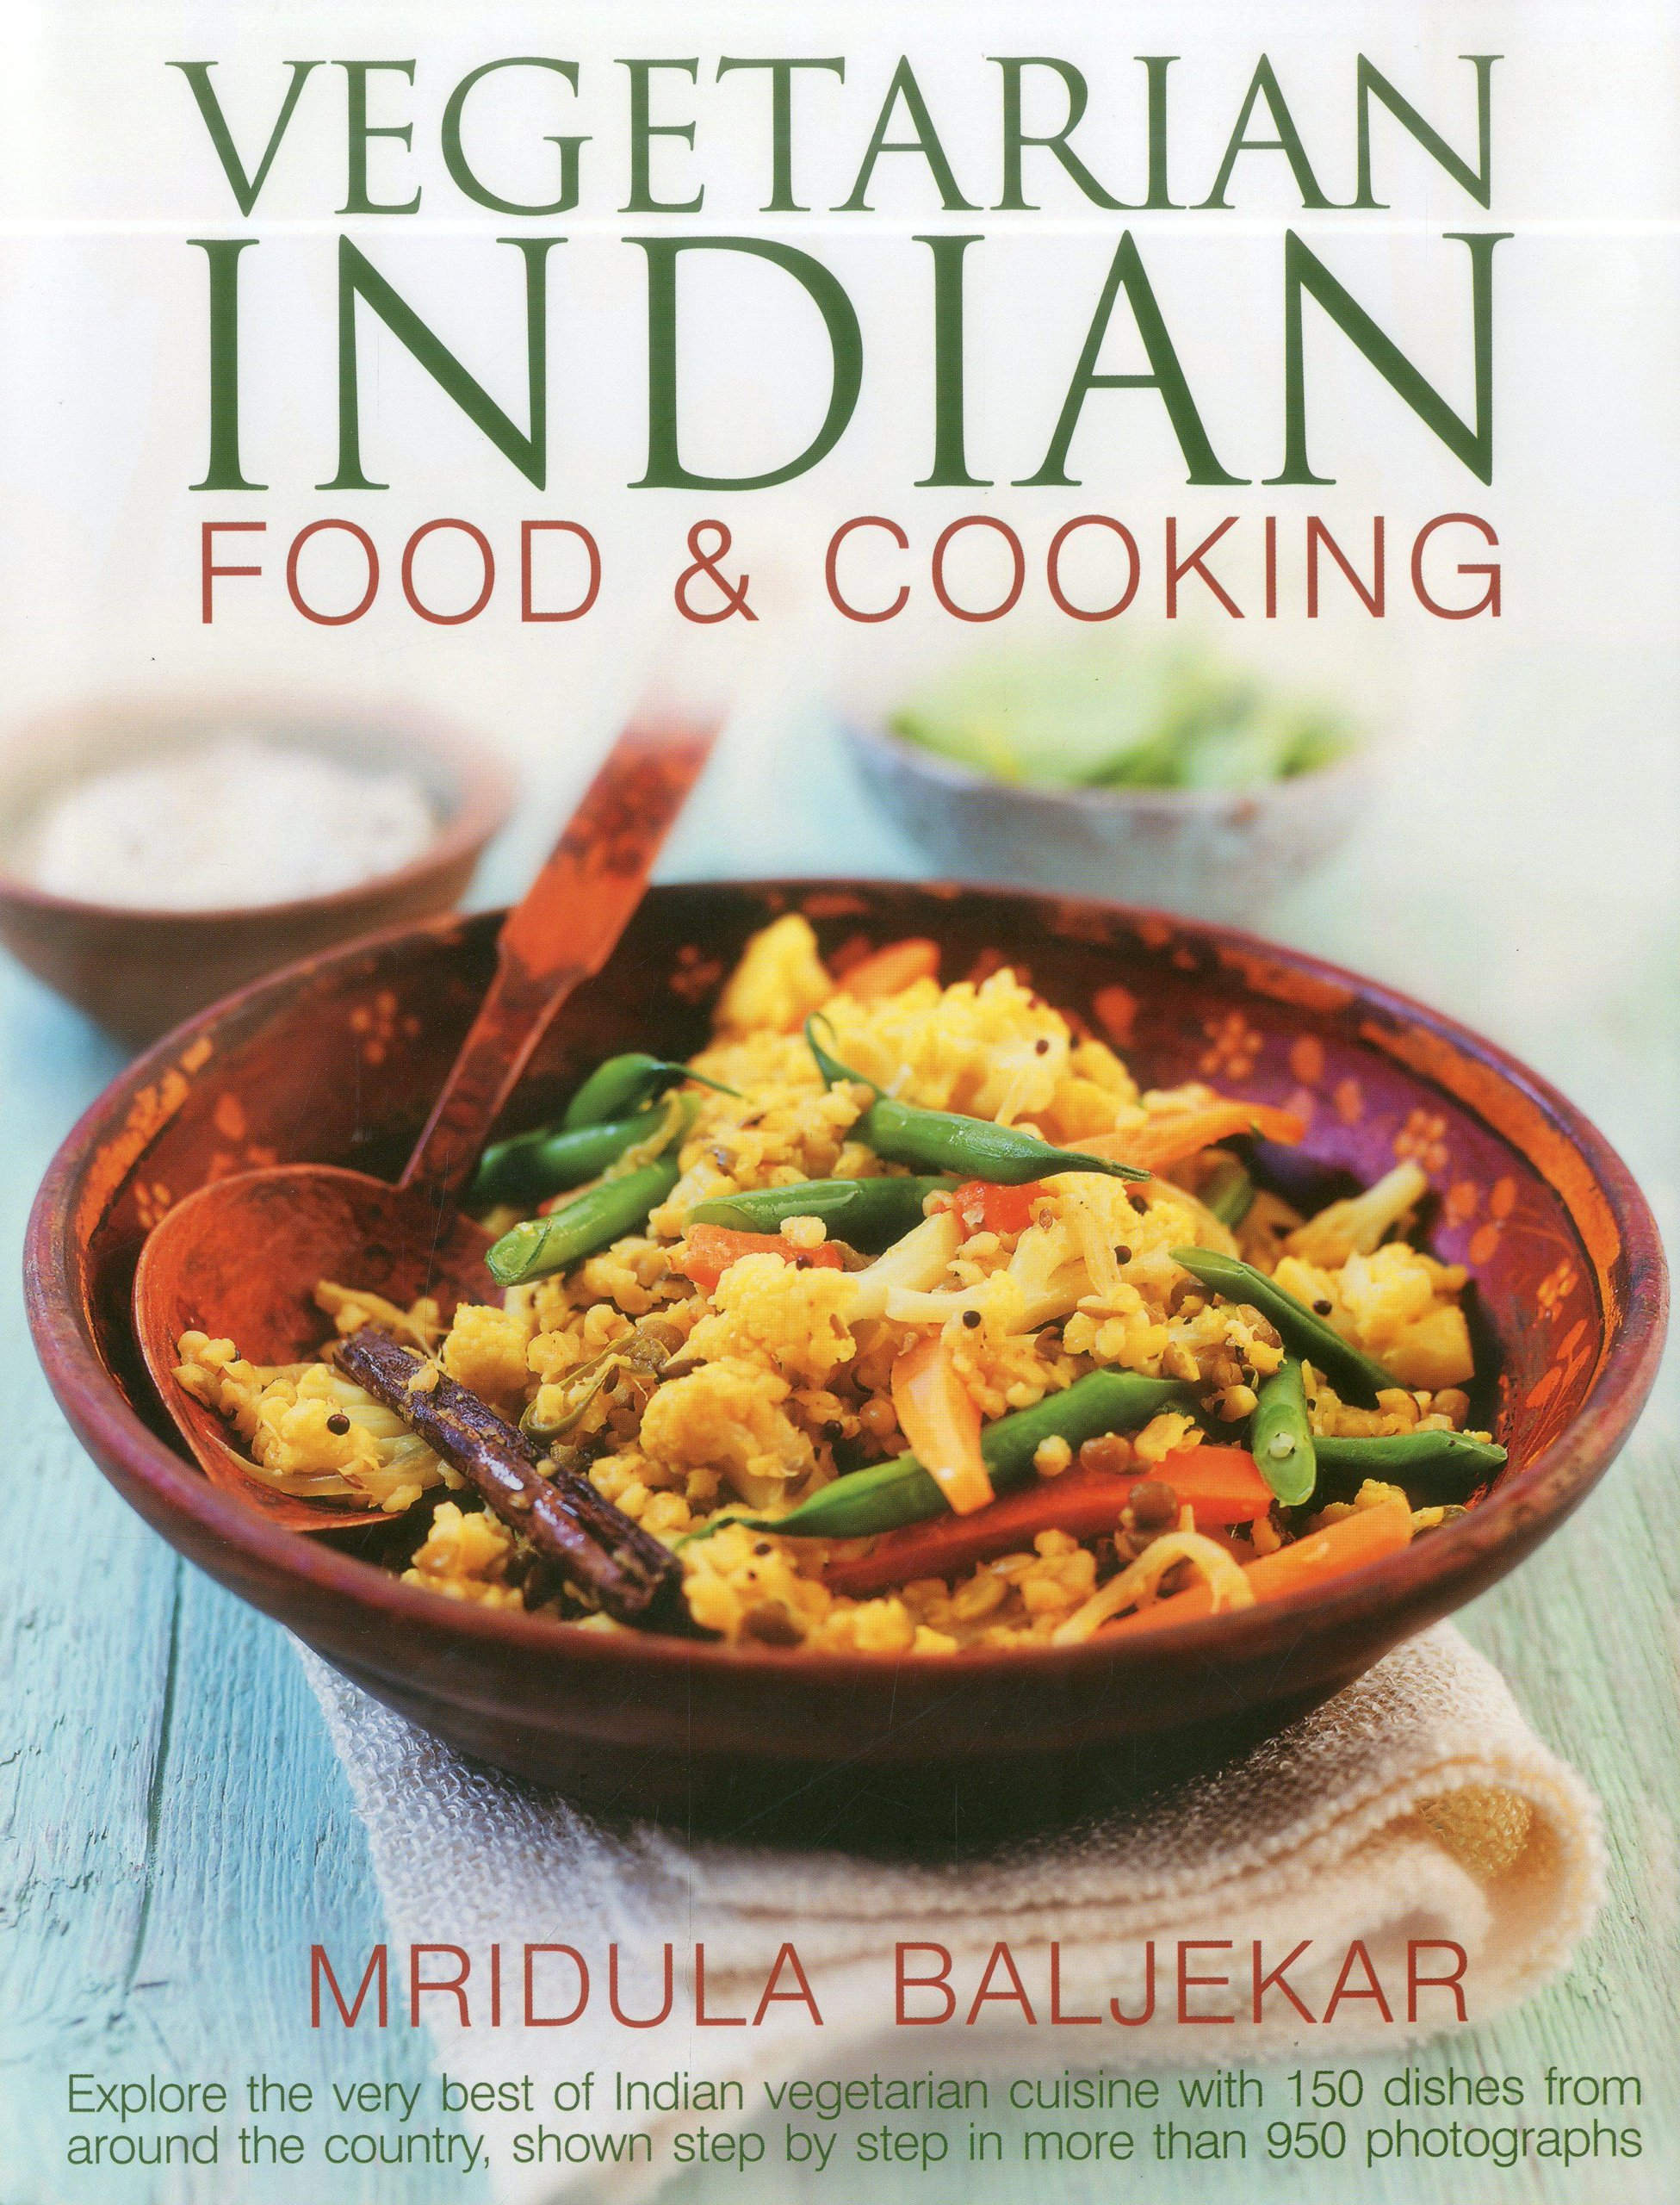 Vegetarian indian food cooking explore the very best of indian vegetarian indian food cooking explore the very best of indian vegetarian cuisine with 150 dishes from around the country shown step by step in more forumfinder Gallery